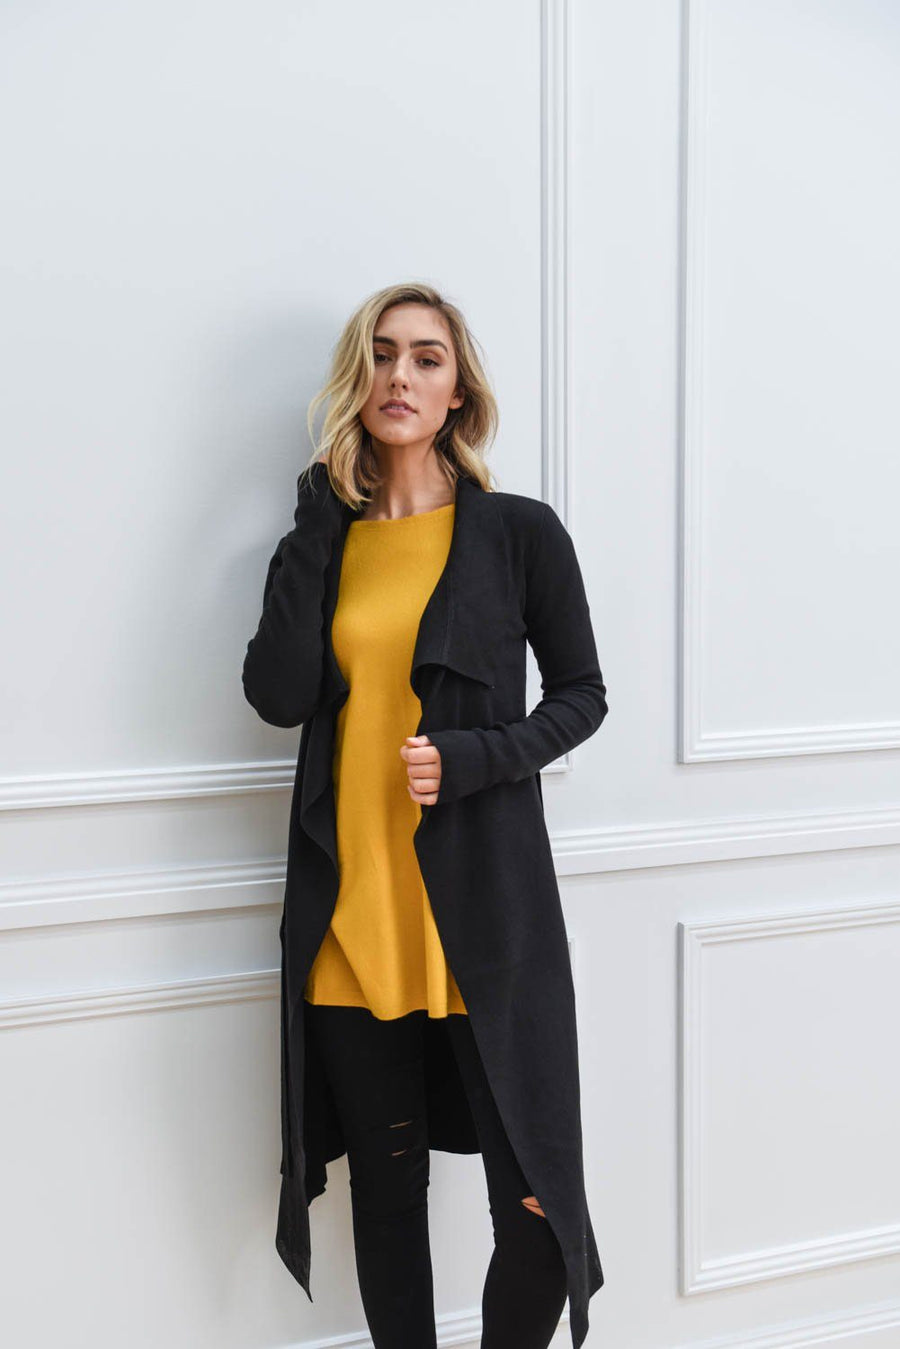 Tash Trench Coatigan | Black Cardigan Gray Label